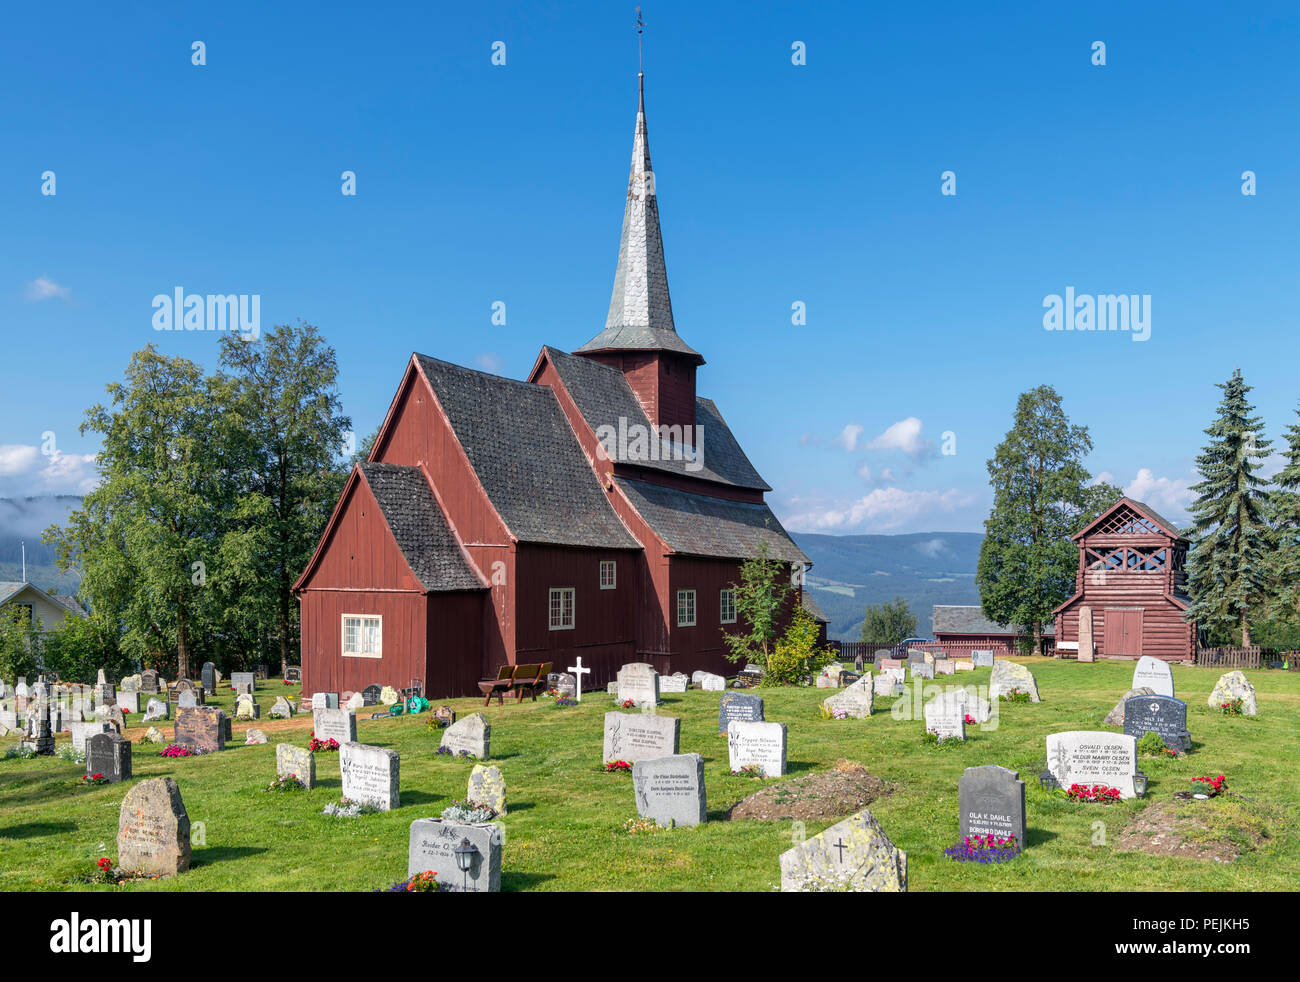 Norway, Stave Churches. The medieval Hegge Stave Church (Hegge stavkyrkje), Hegge, Oppland, Norway - Stock Image